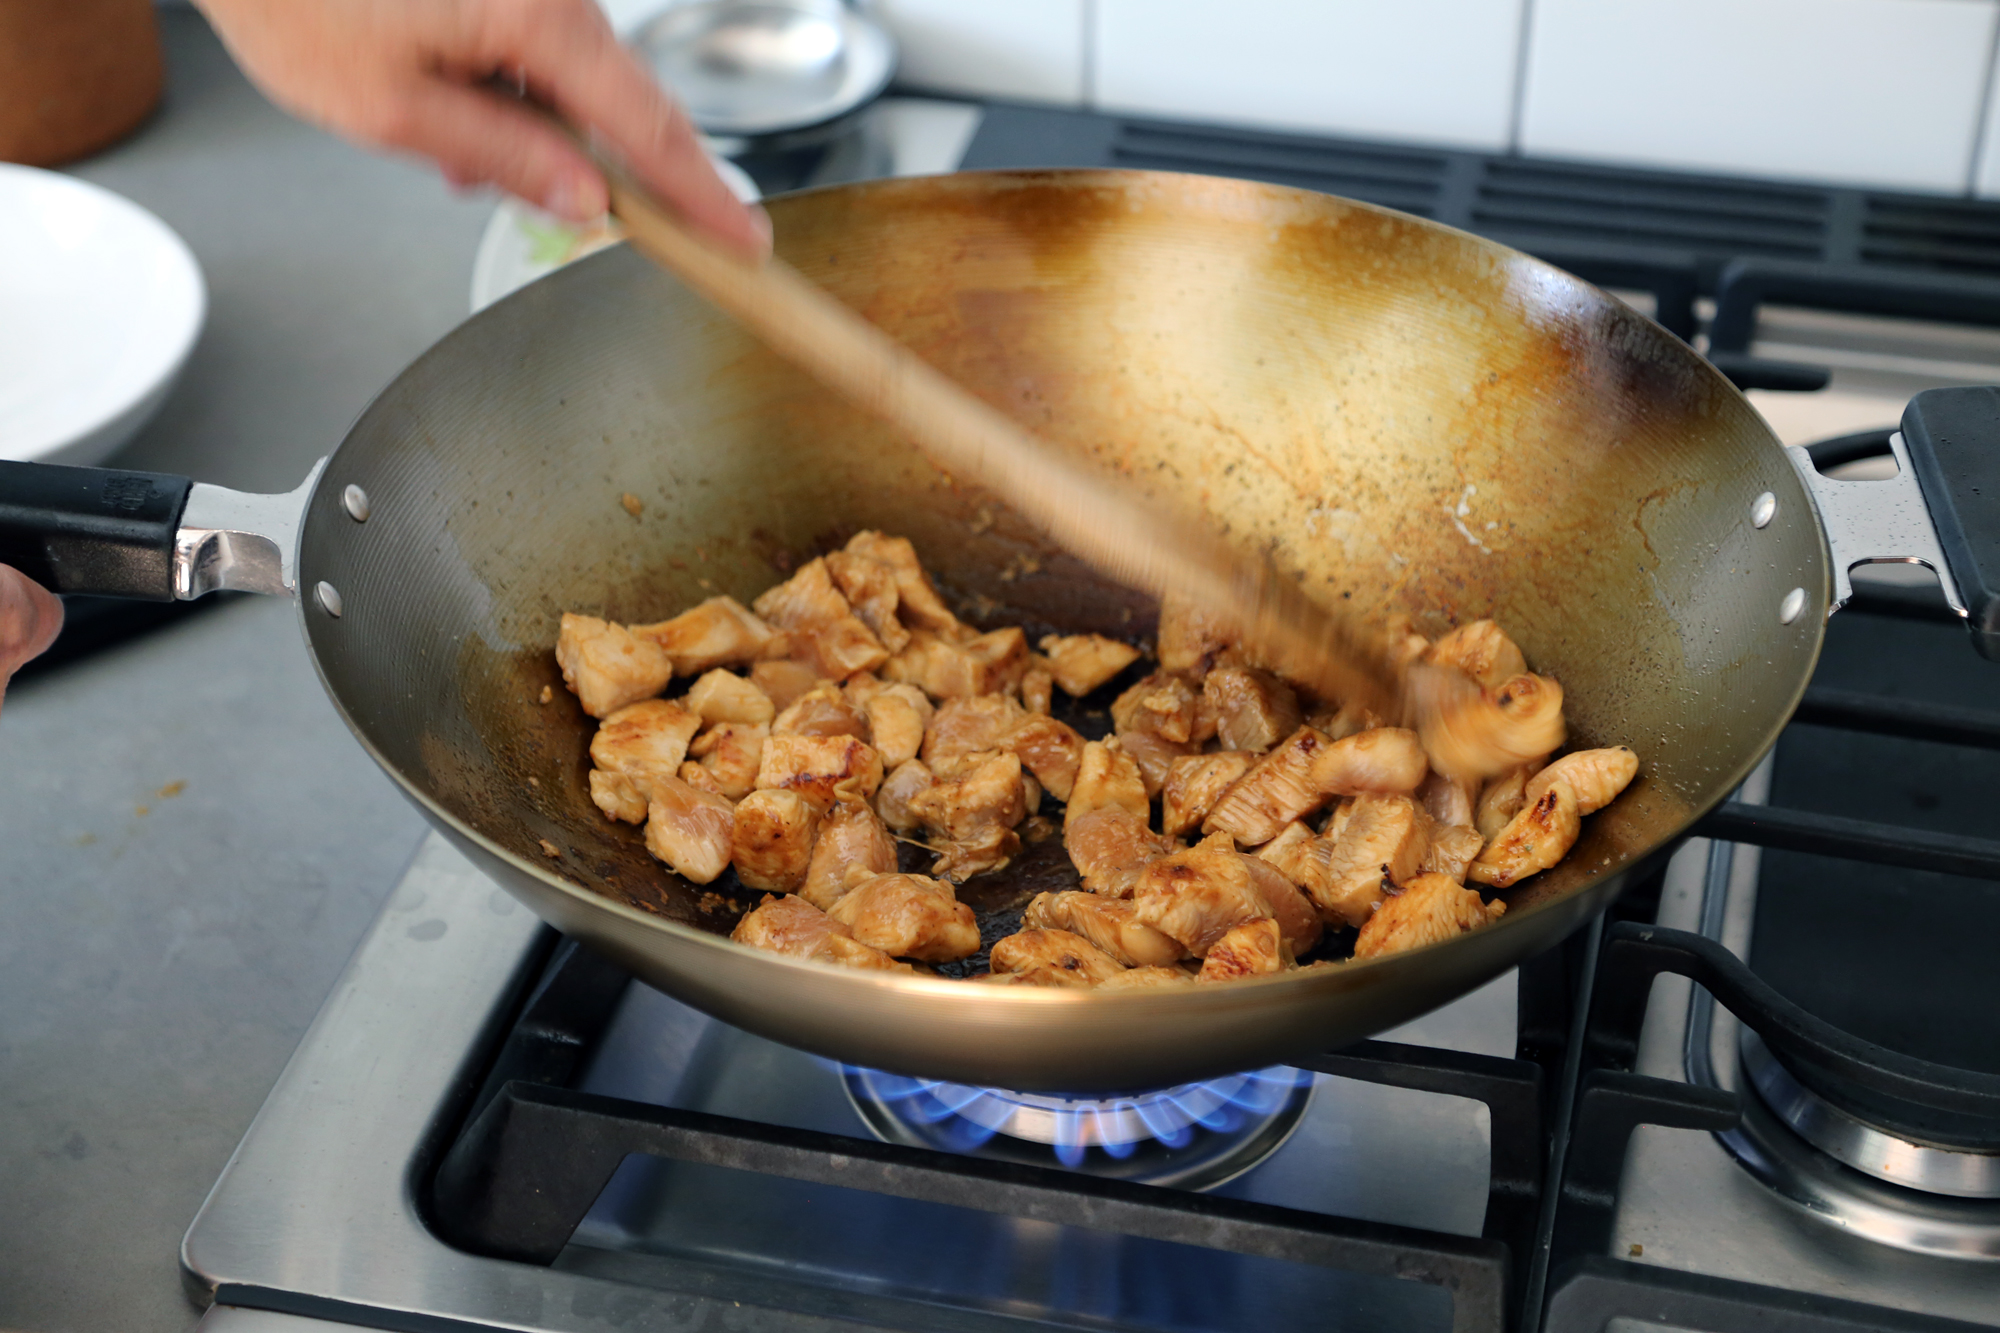 When the oil is very hot, add the chicken. Cook on the first side without moving it, until it begins to brown, about 2 minutes.